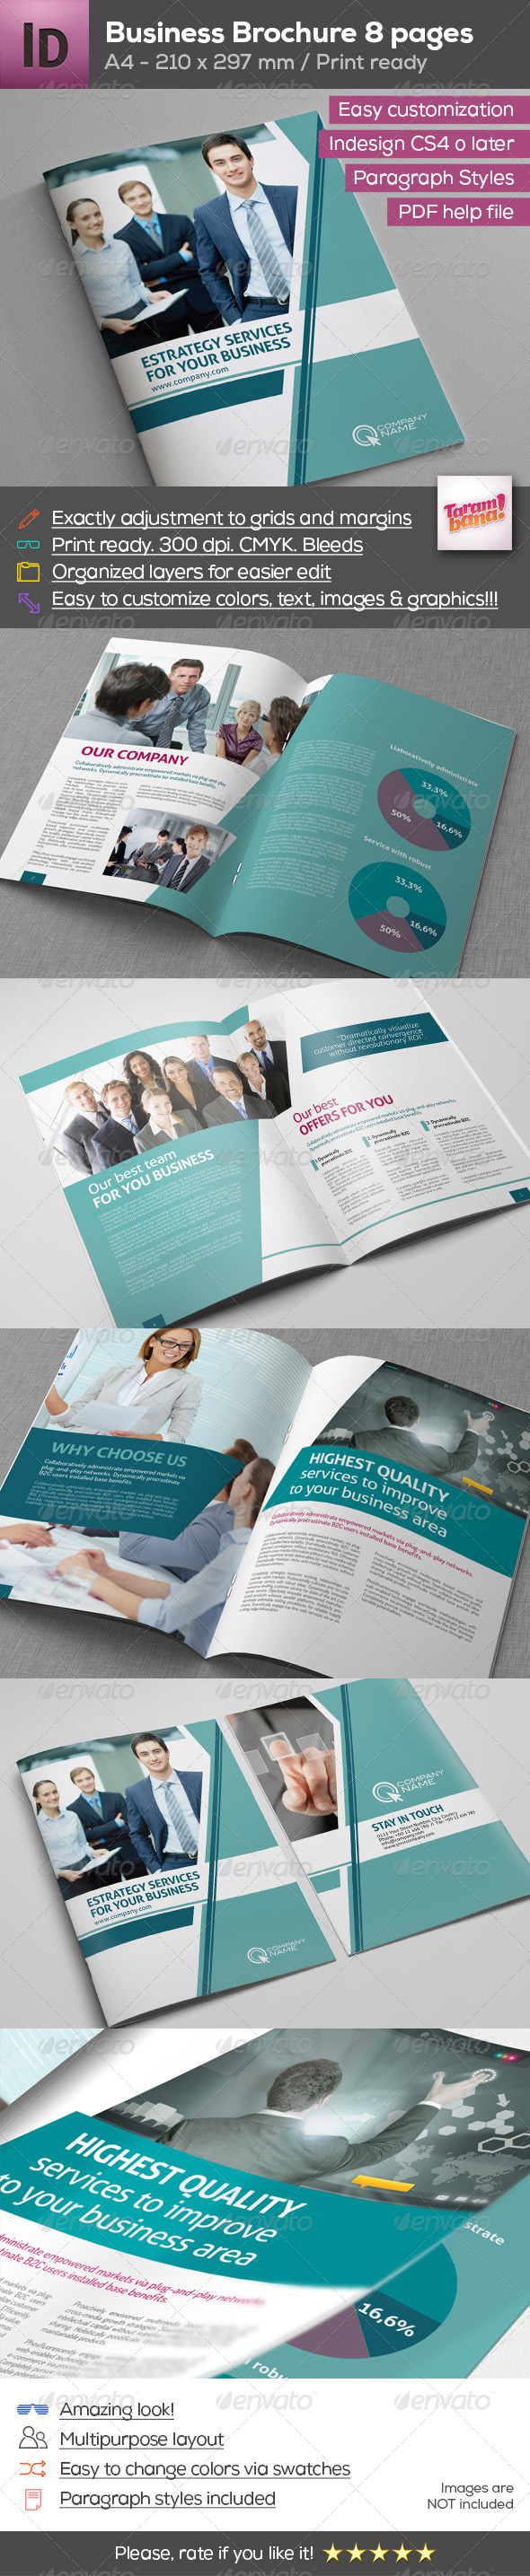 A4 Modern Business Brochure